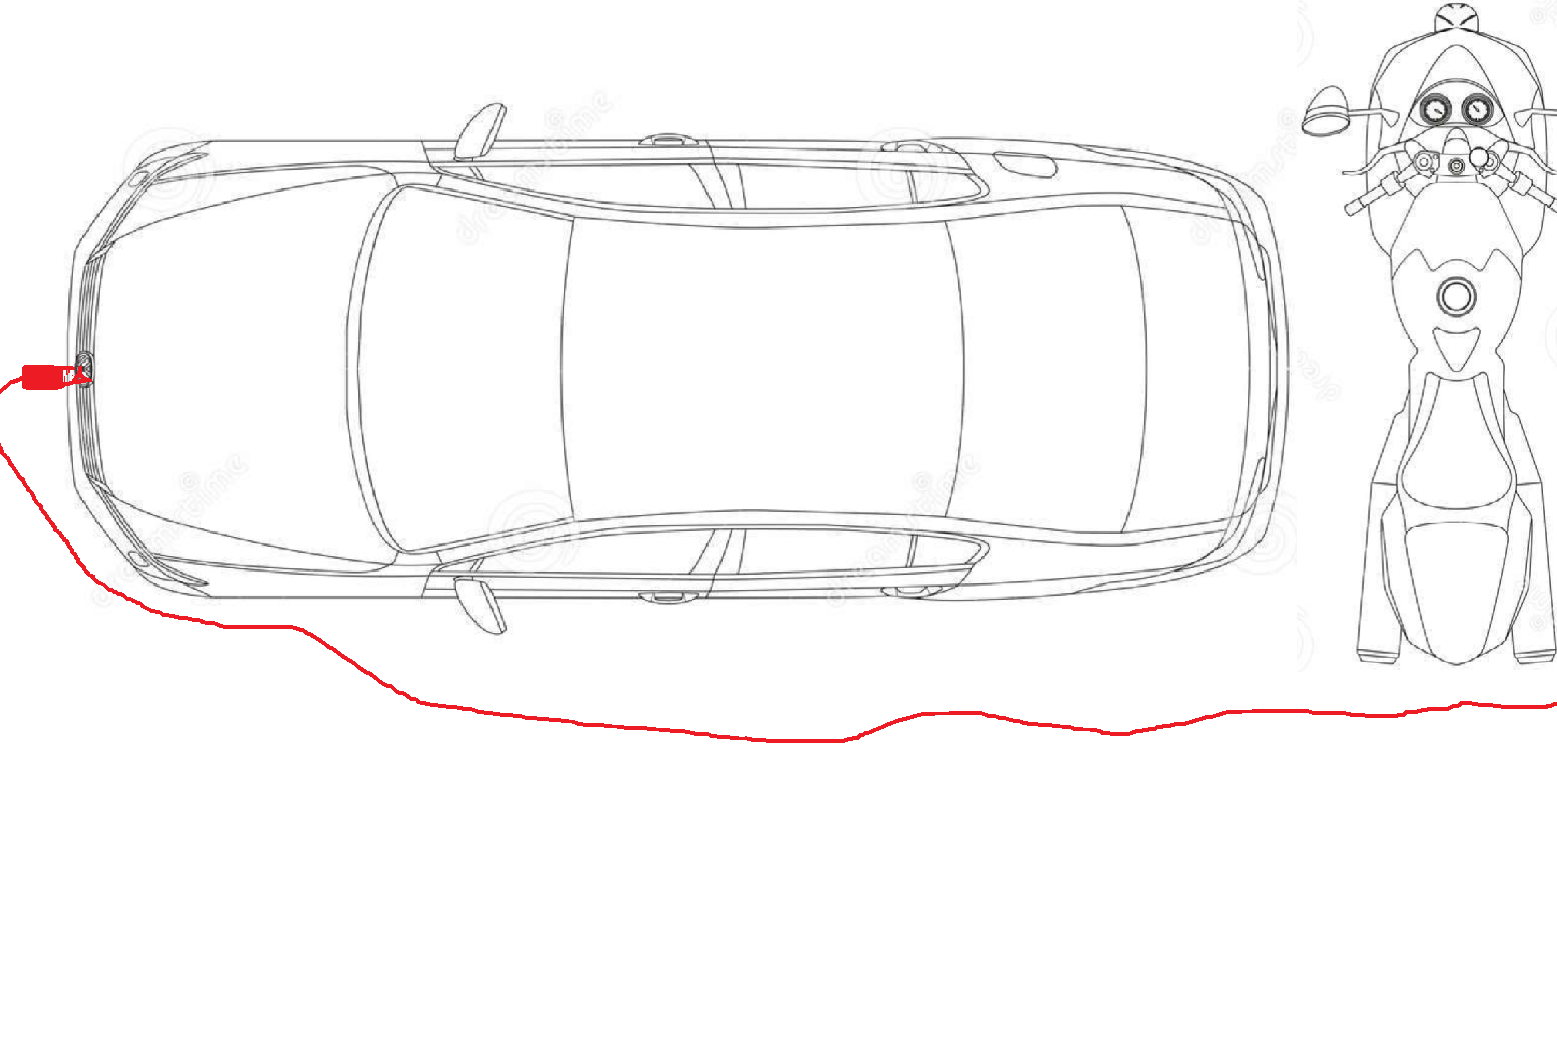 coche.png